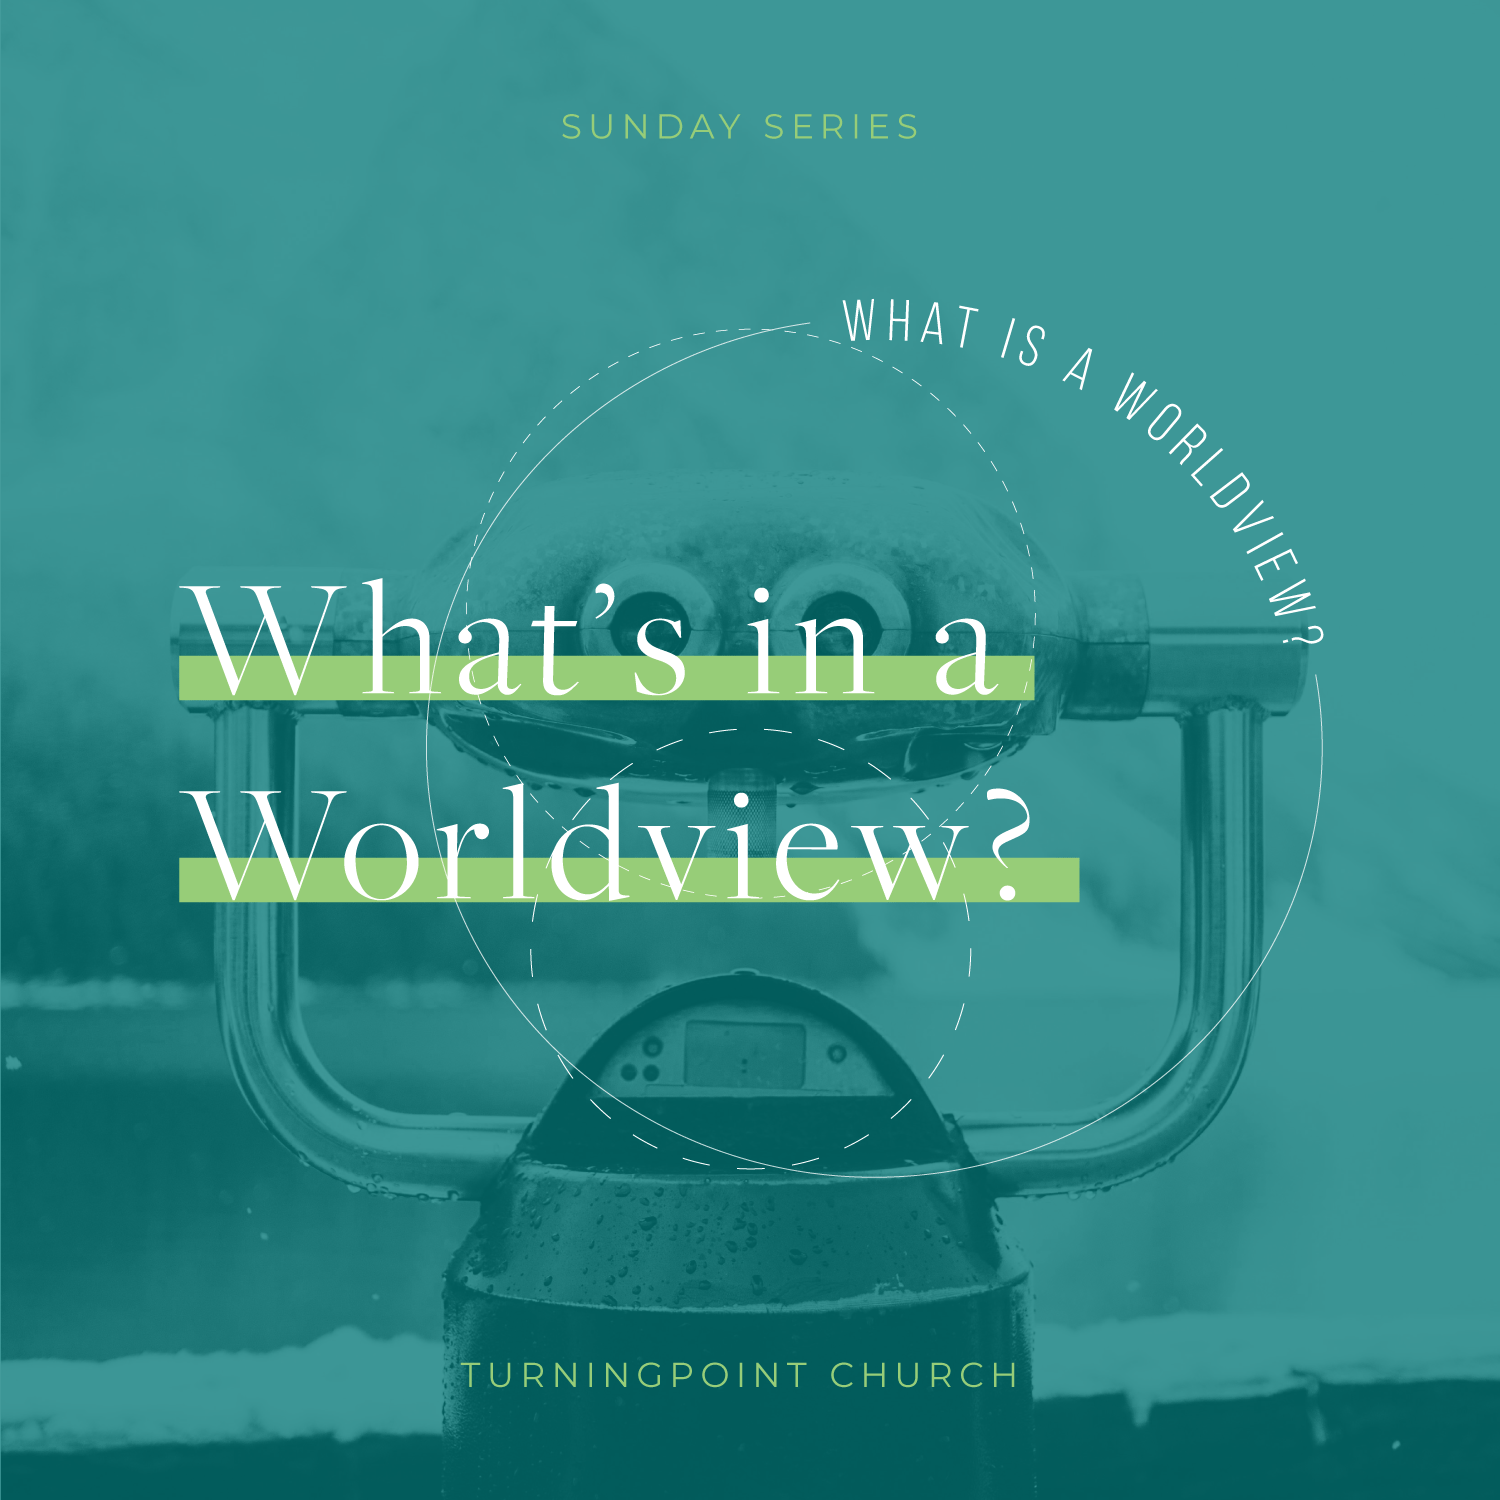 00 - What's In A Worldview?  - Complete Series By Pastor Jeff Wickwire | LT38666-1